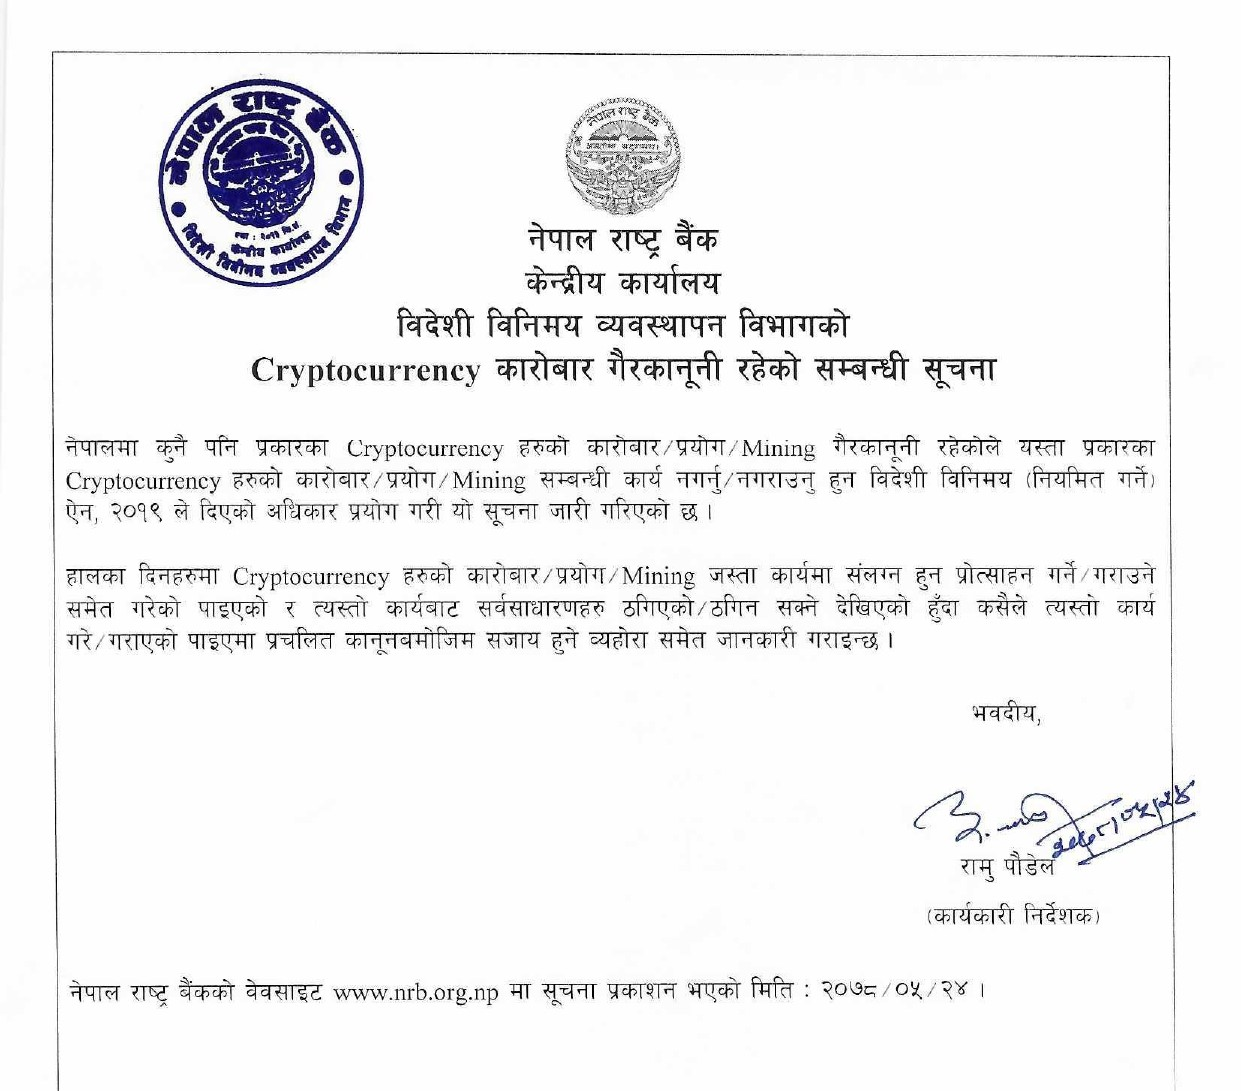 NRB issues Notice on Cryptocurrency